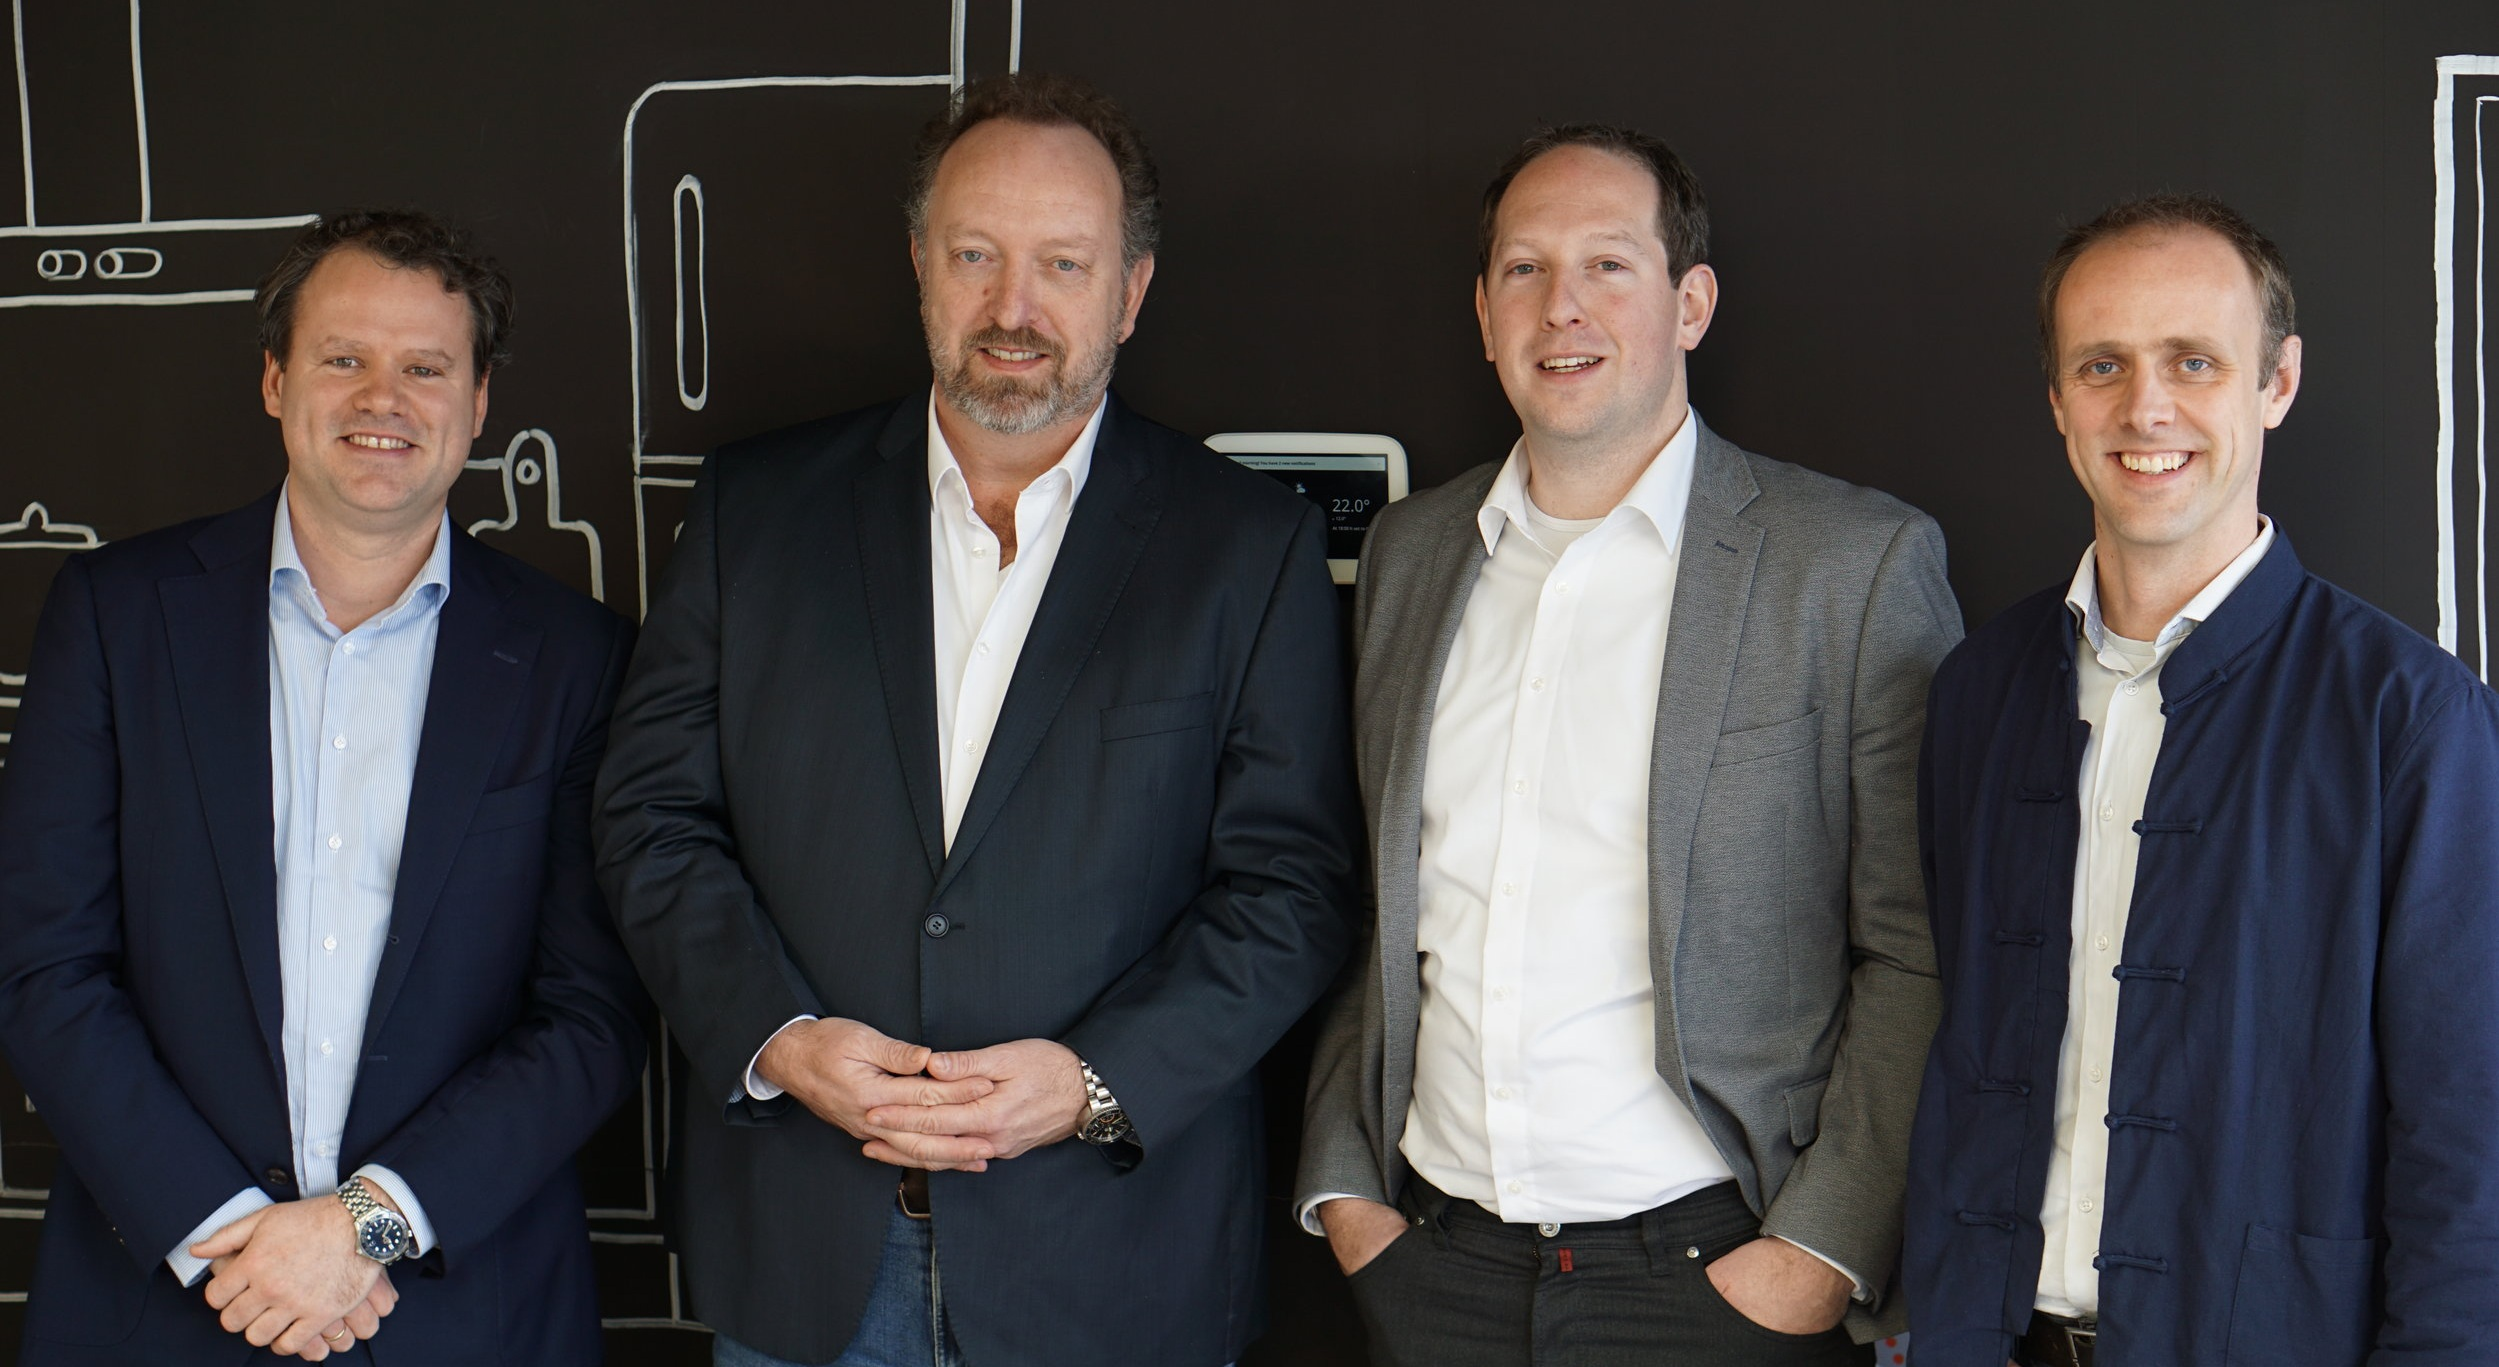 From left to right: Wicher de Groot (CCO), Dick van Driel (CEO), Mark Verhoeven (CFO) and Jorrit van der Laan (COO)